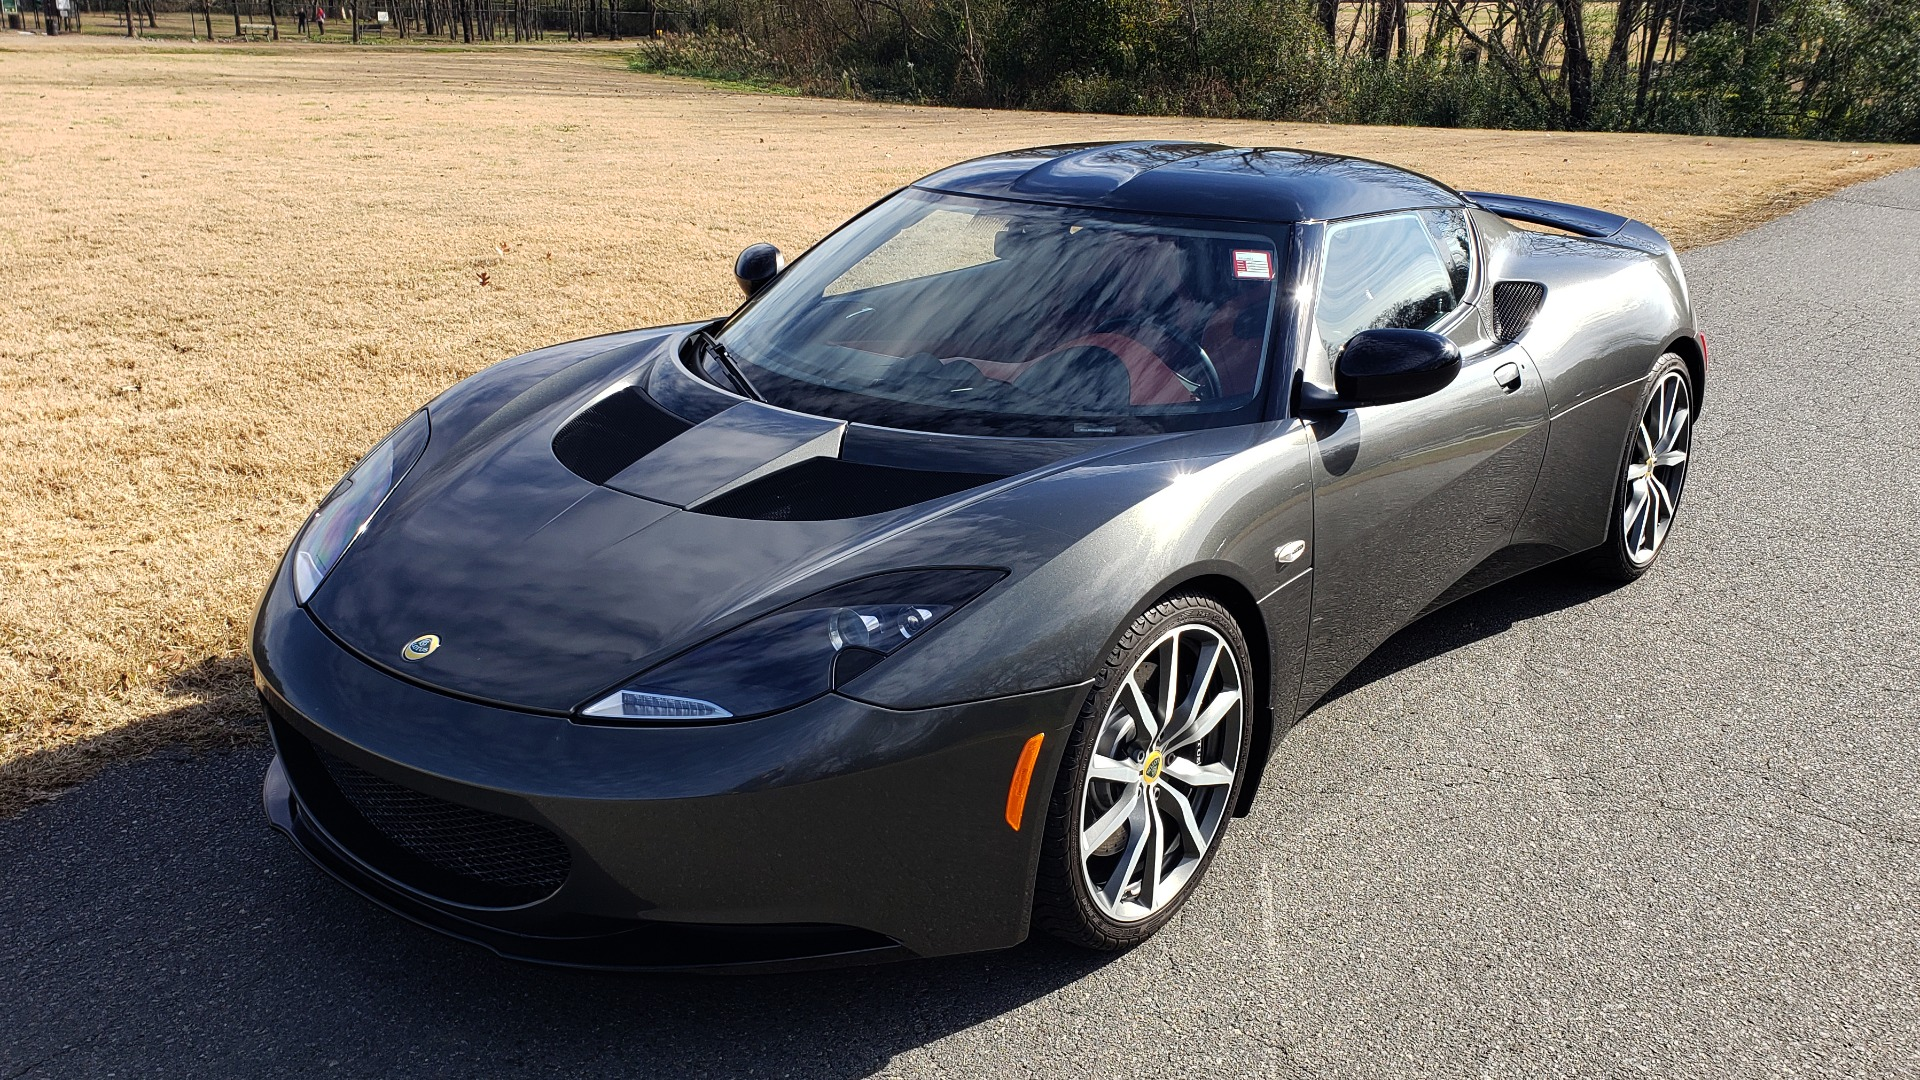 Used 2011 Lotus EVORA S 2+2 / 3.5L V6 / 6-SPD MANUAL / PIONEER / REARVIEW / LOW MILES for sale Sold at Formula Imports in Charlotte NC 28227 2